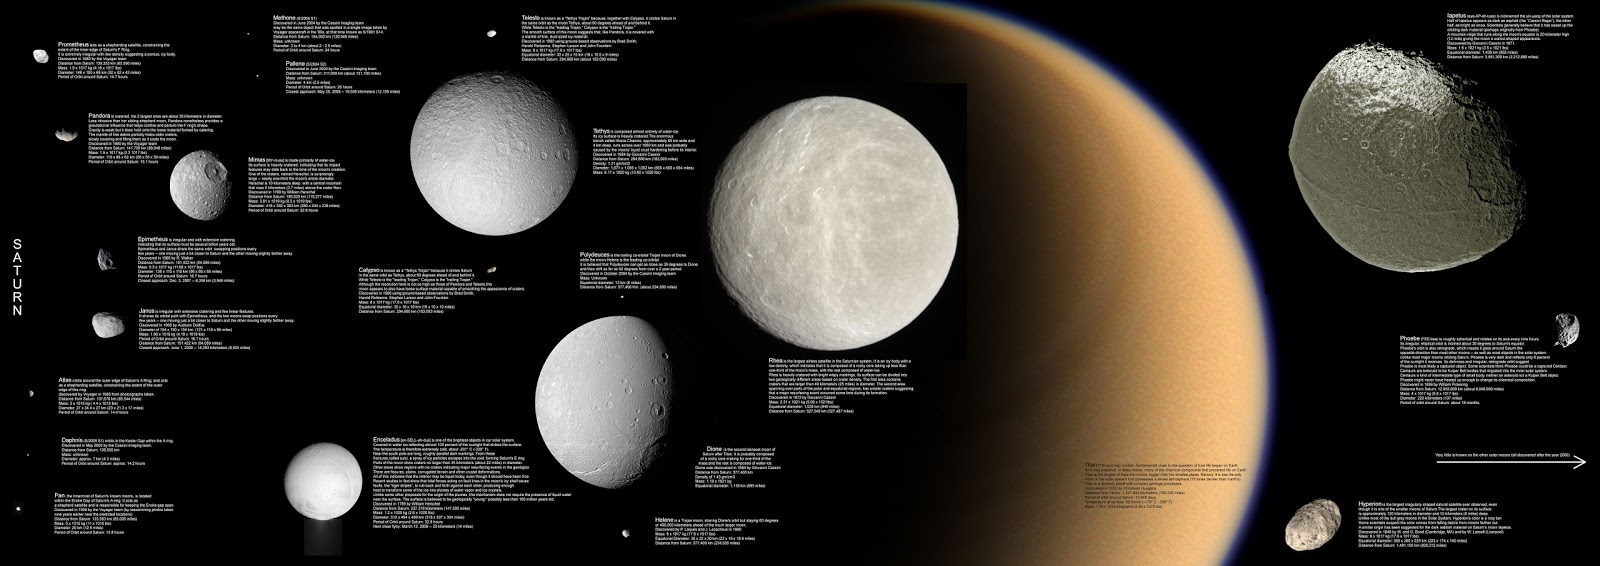 Life in the Cosmos: The Many Unknown Moons of Saturn